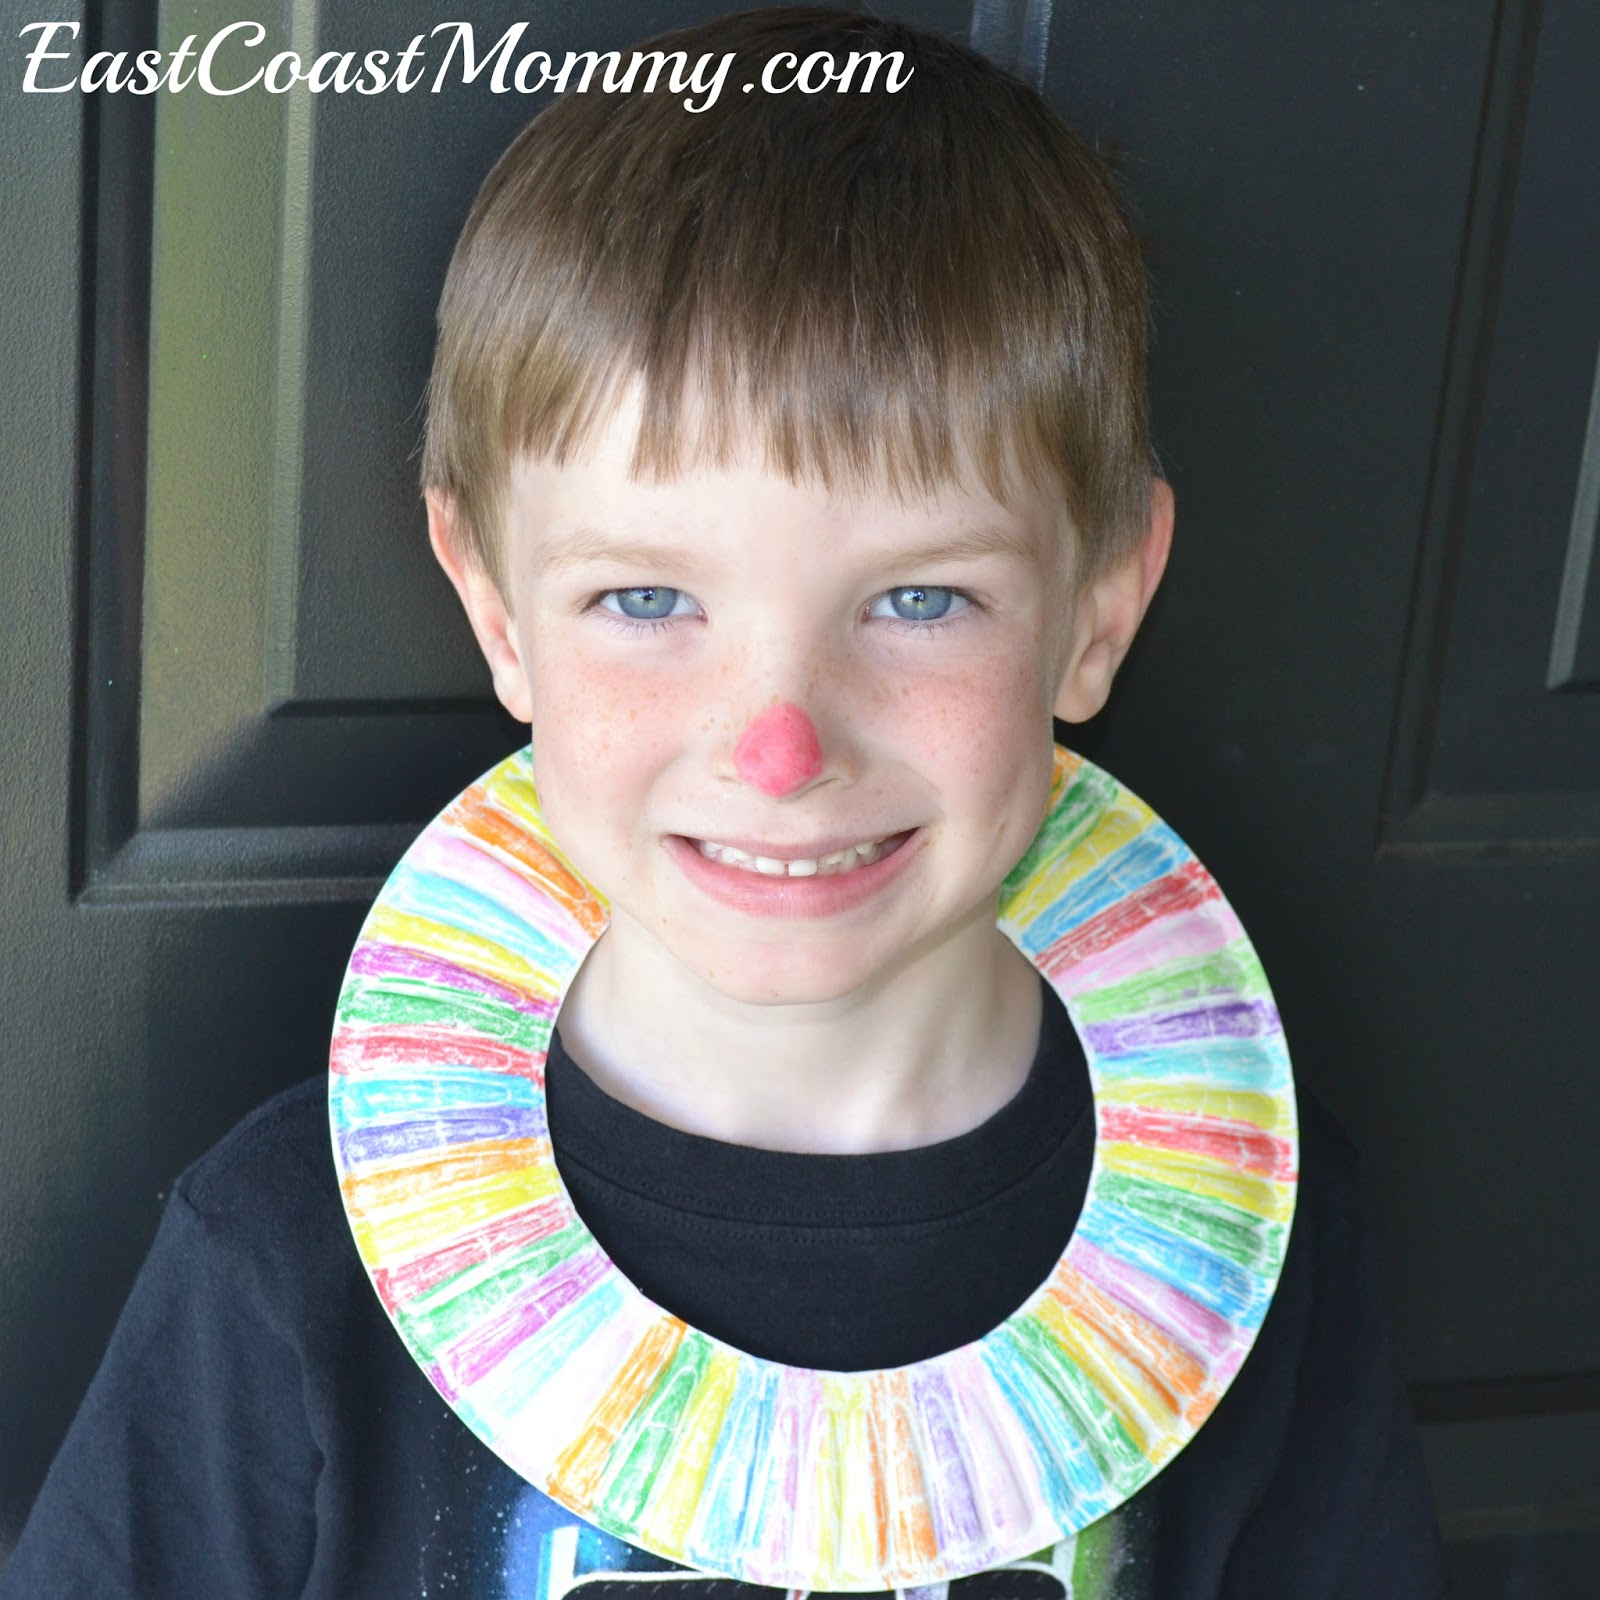 ... a paper plate color it and cut a slit in the back. I love how easy and inexpensive this craft is and I guarantee your little ones will love it too!  sc 1 st  East Coast Mommy & East Coast Mommy: Circus Crafts... with free printable templates